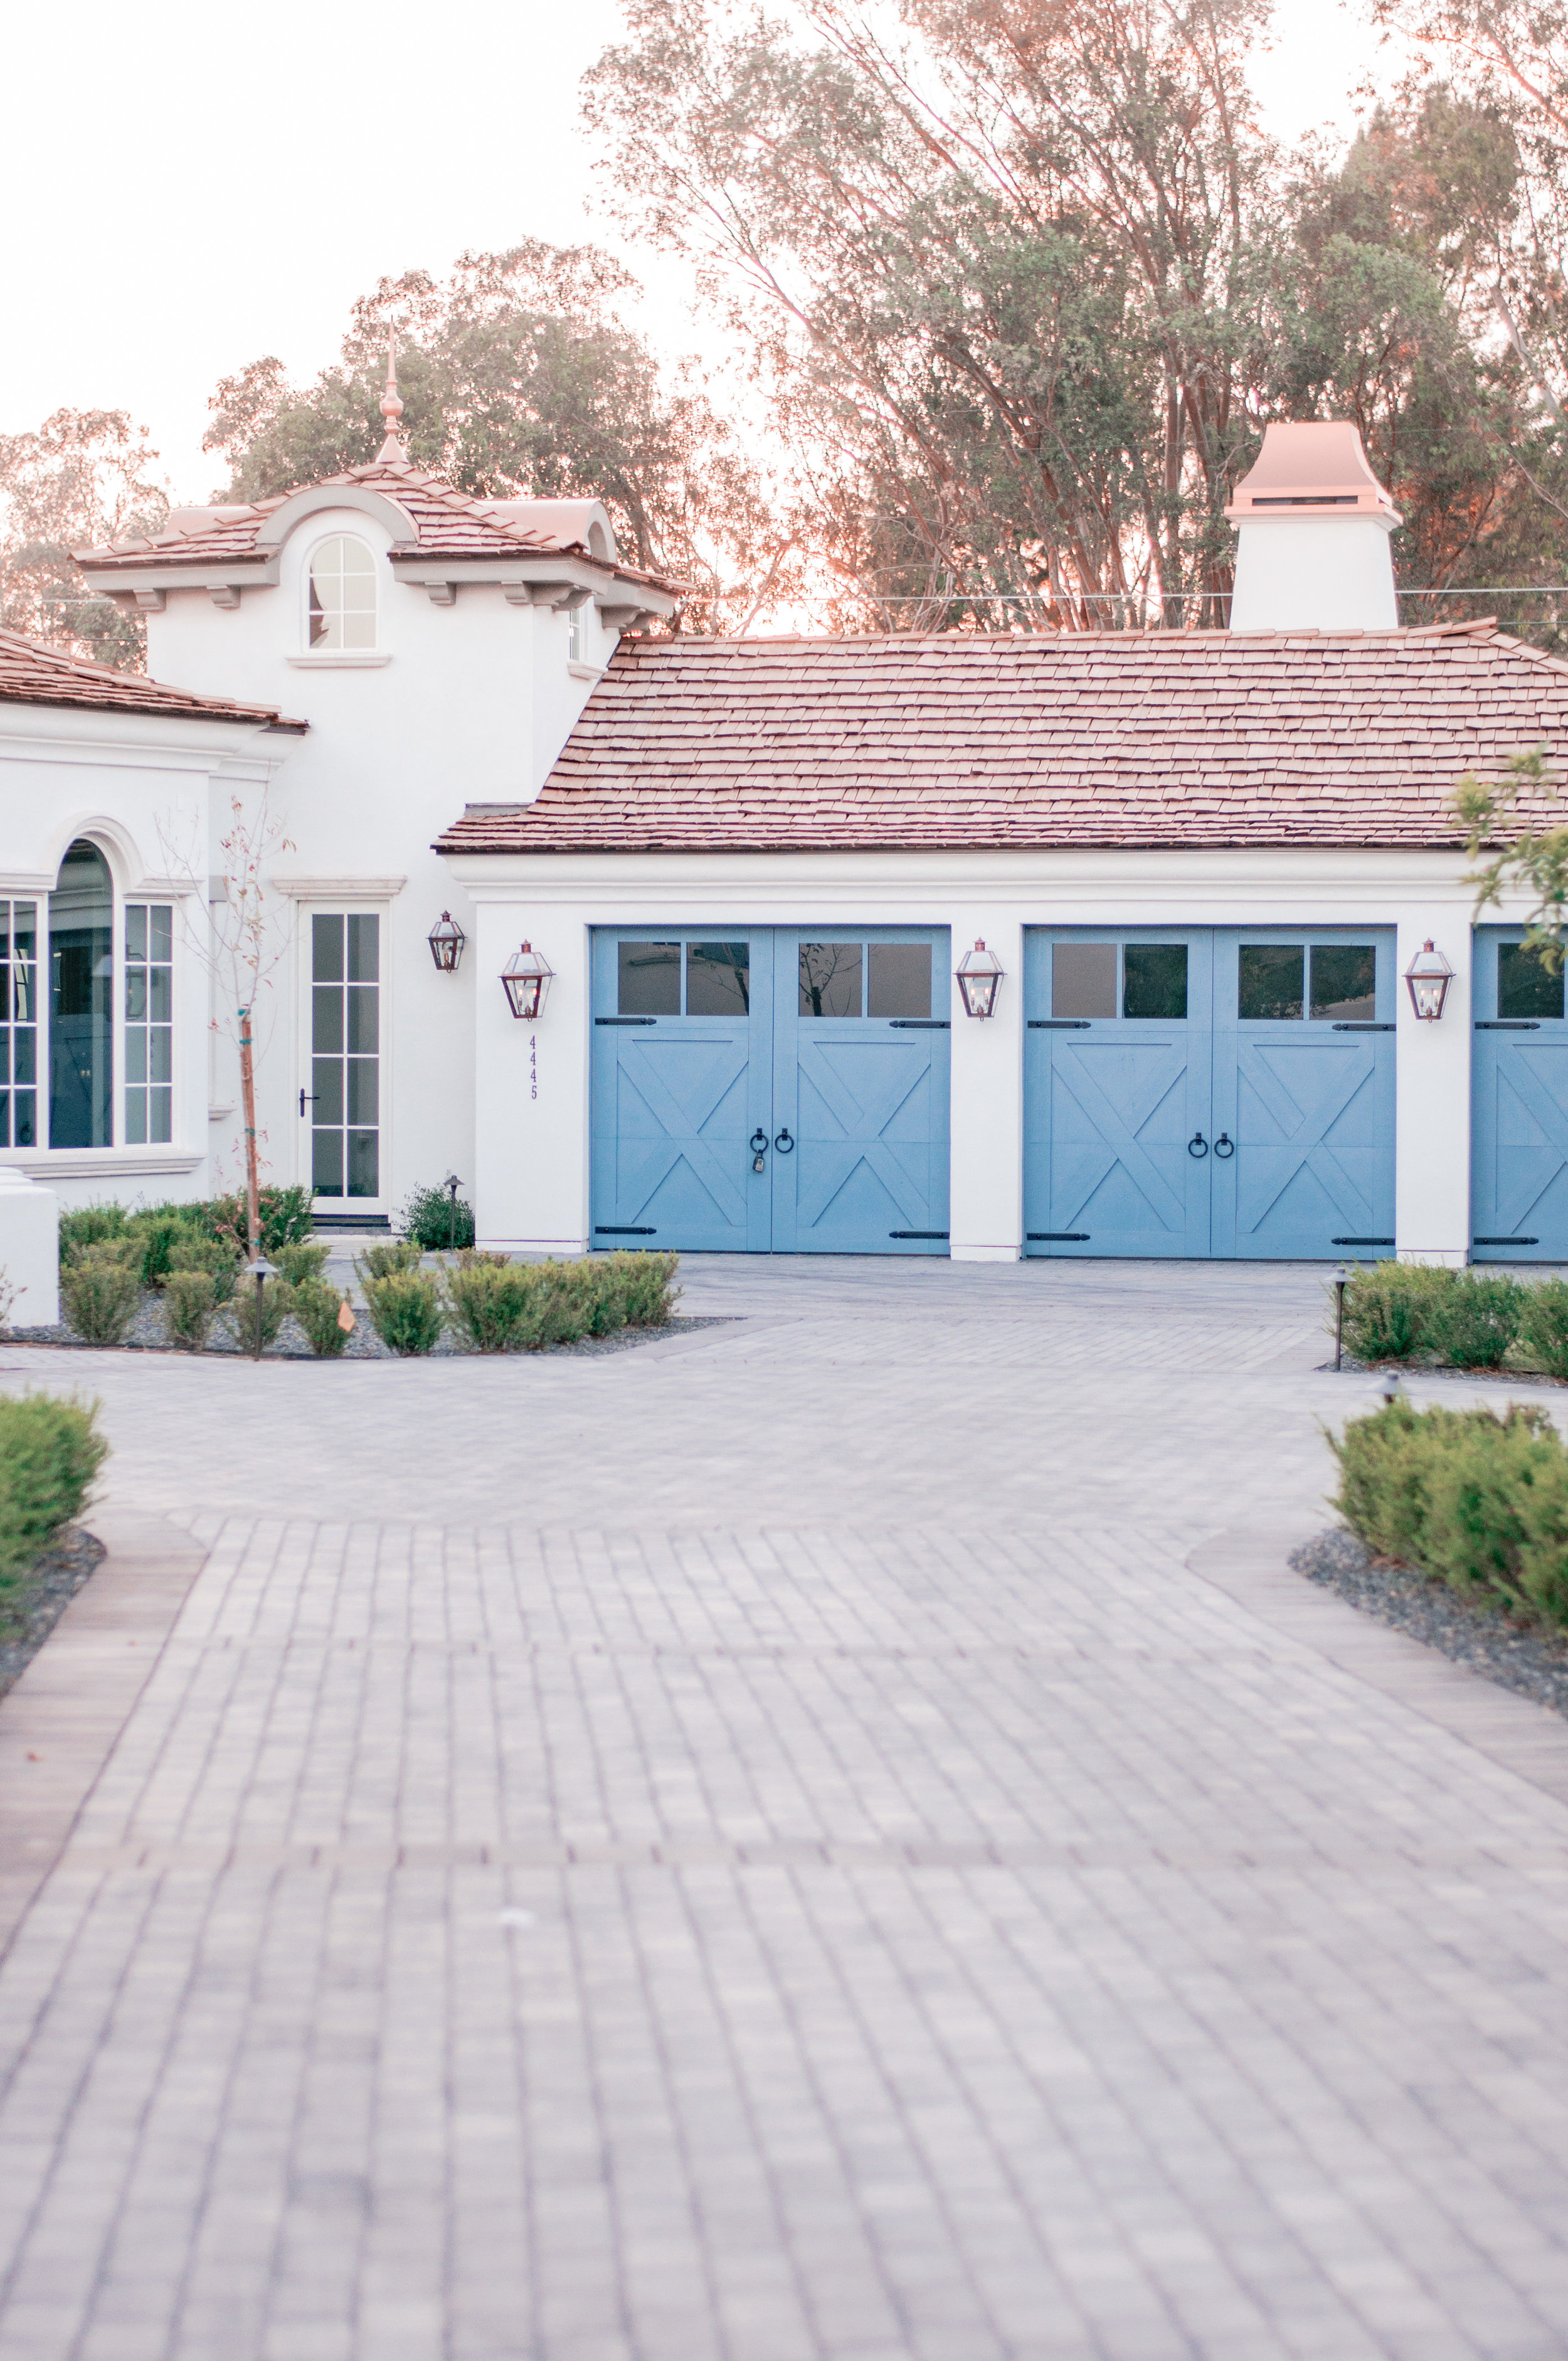 Colorful garage doors in Arcadia, Phoenix, Arizona